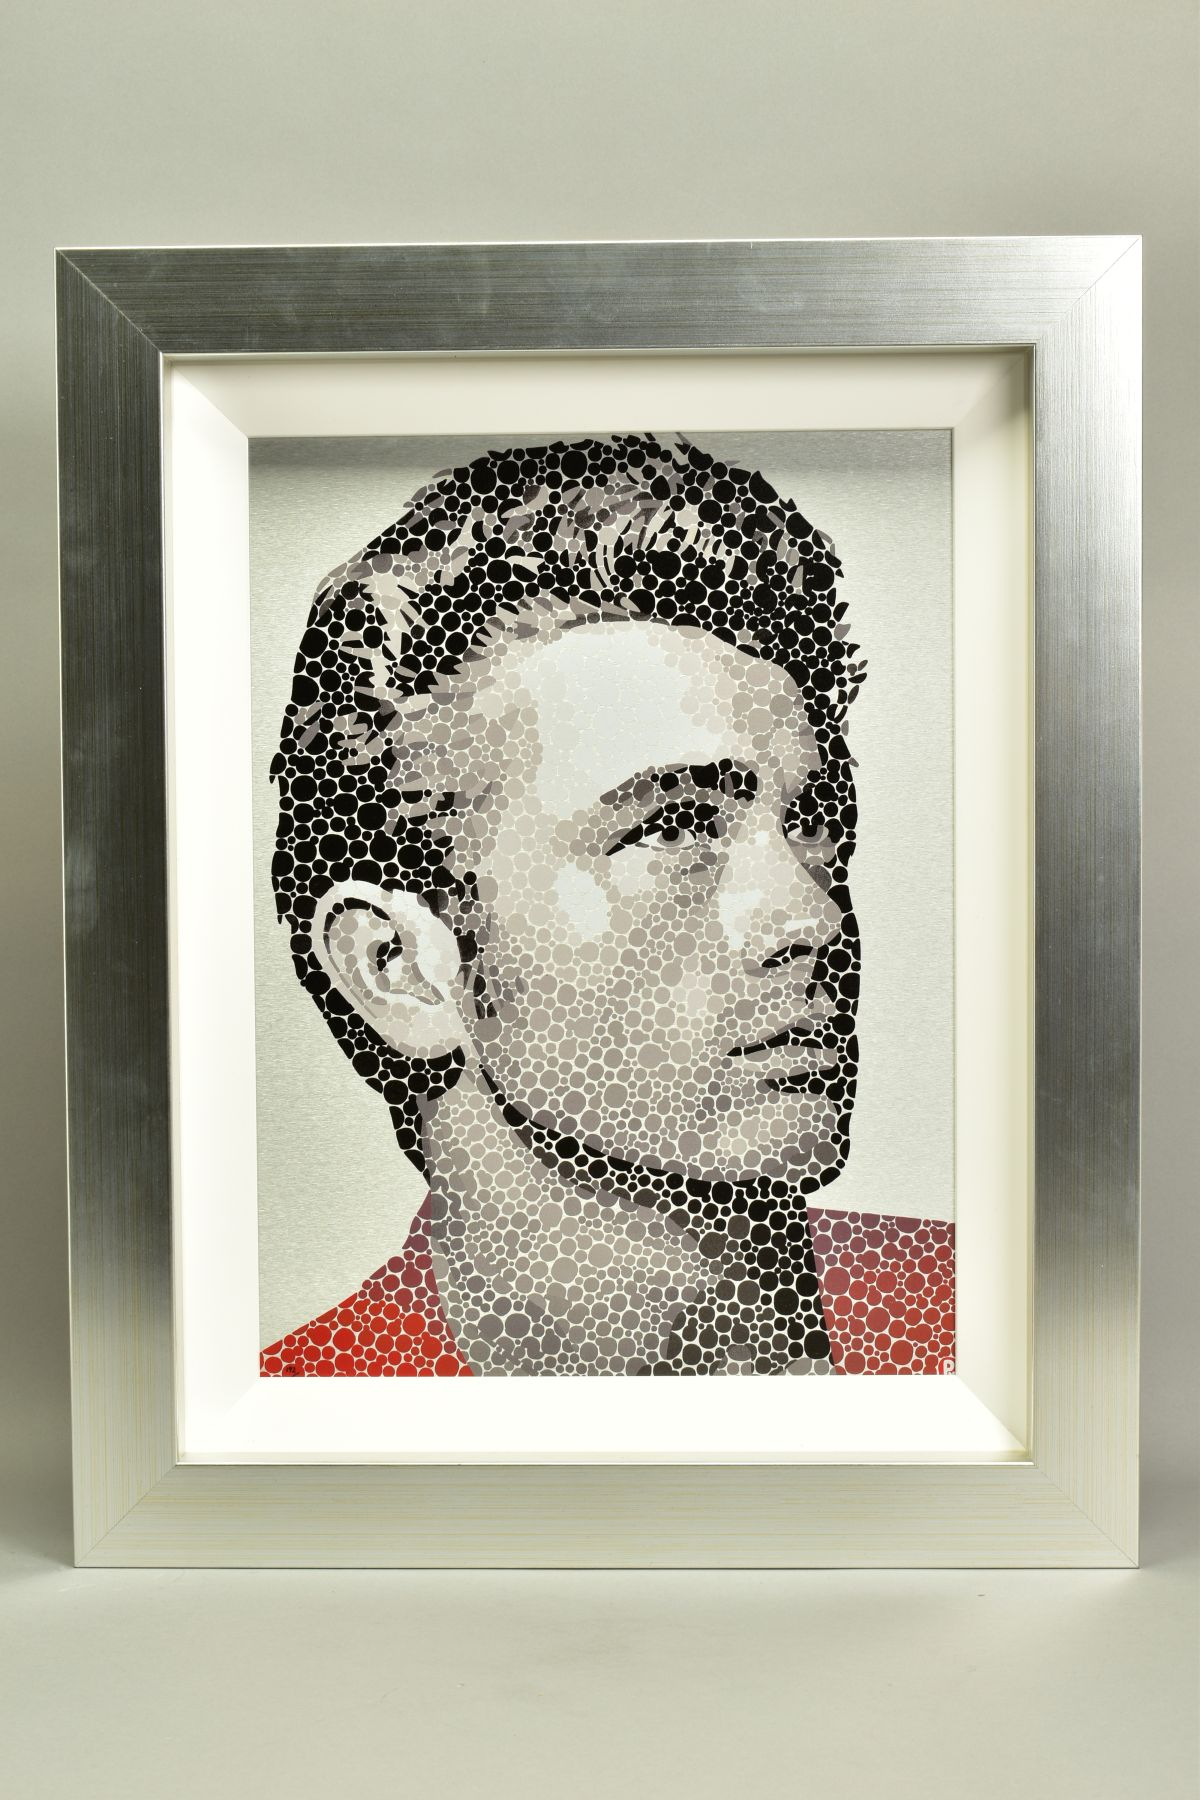 PAUL NORMANSELL (BRITISH 1978), 'James Dean, The Rebel', a Limited Edition print on aluminium,